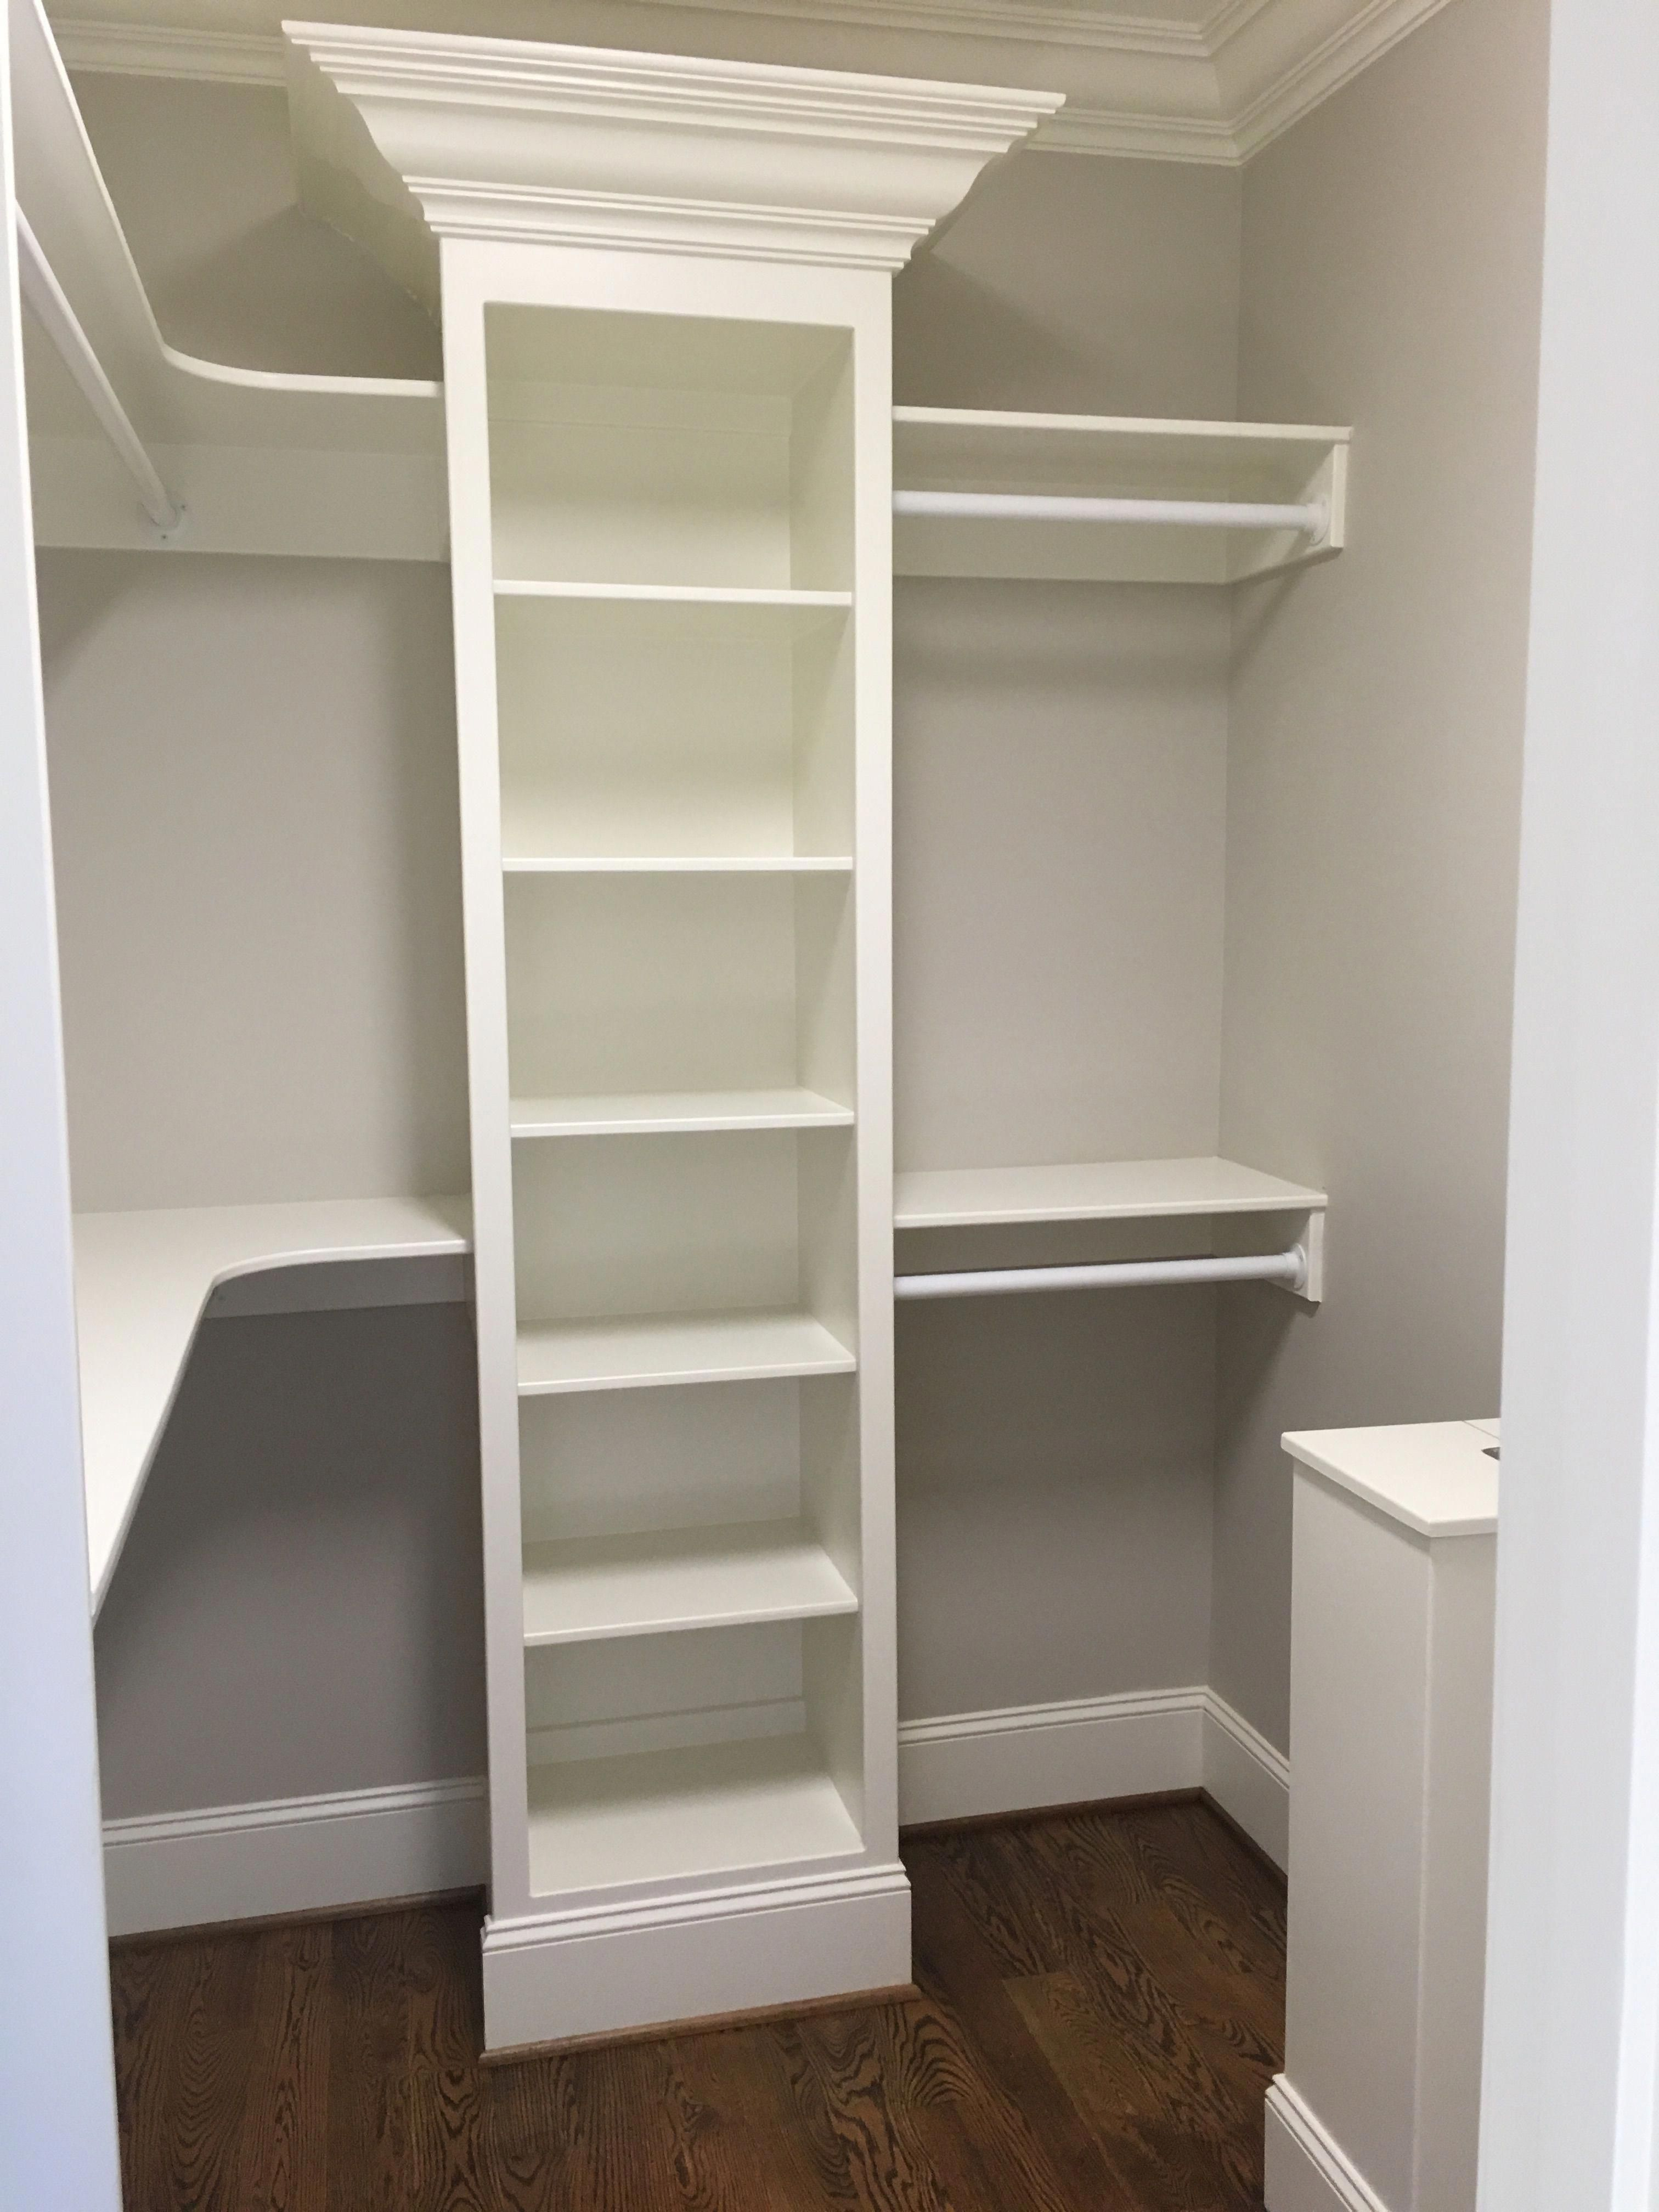 Prices For The Development Of A Basement With Images Closet Small Bedroom Closet Remodel Small Closet Remodel